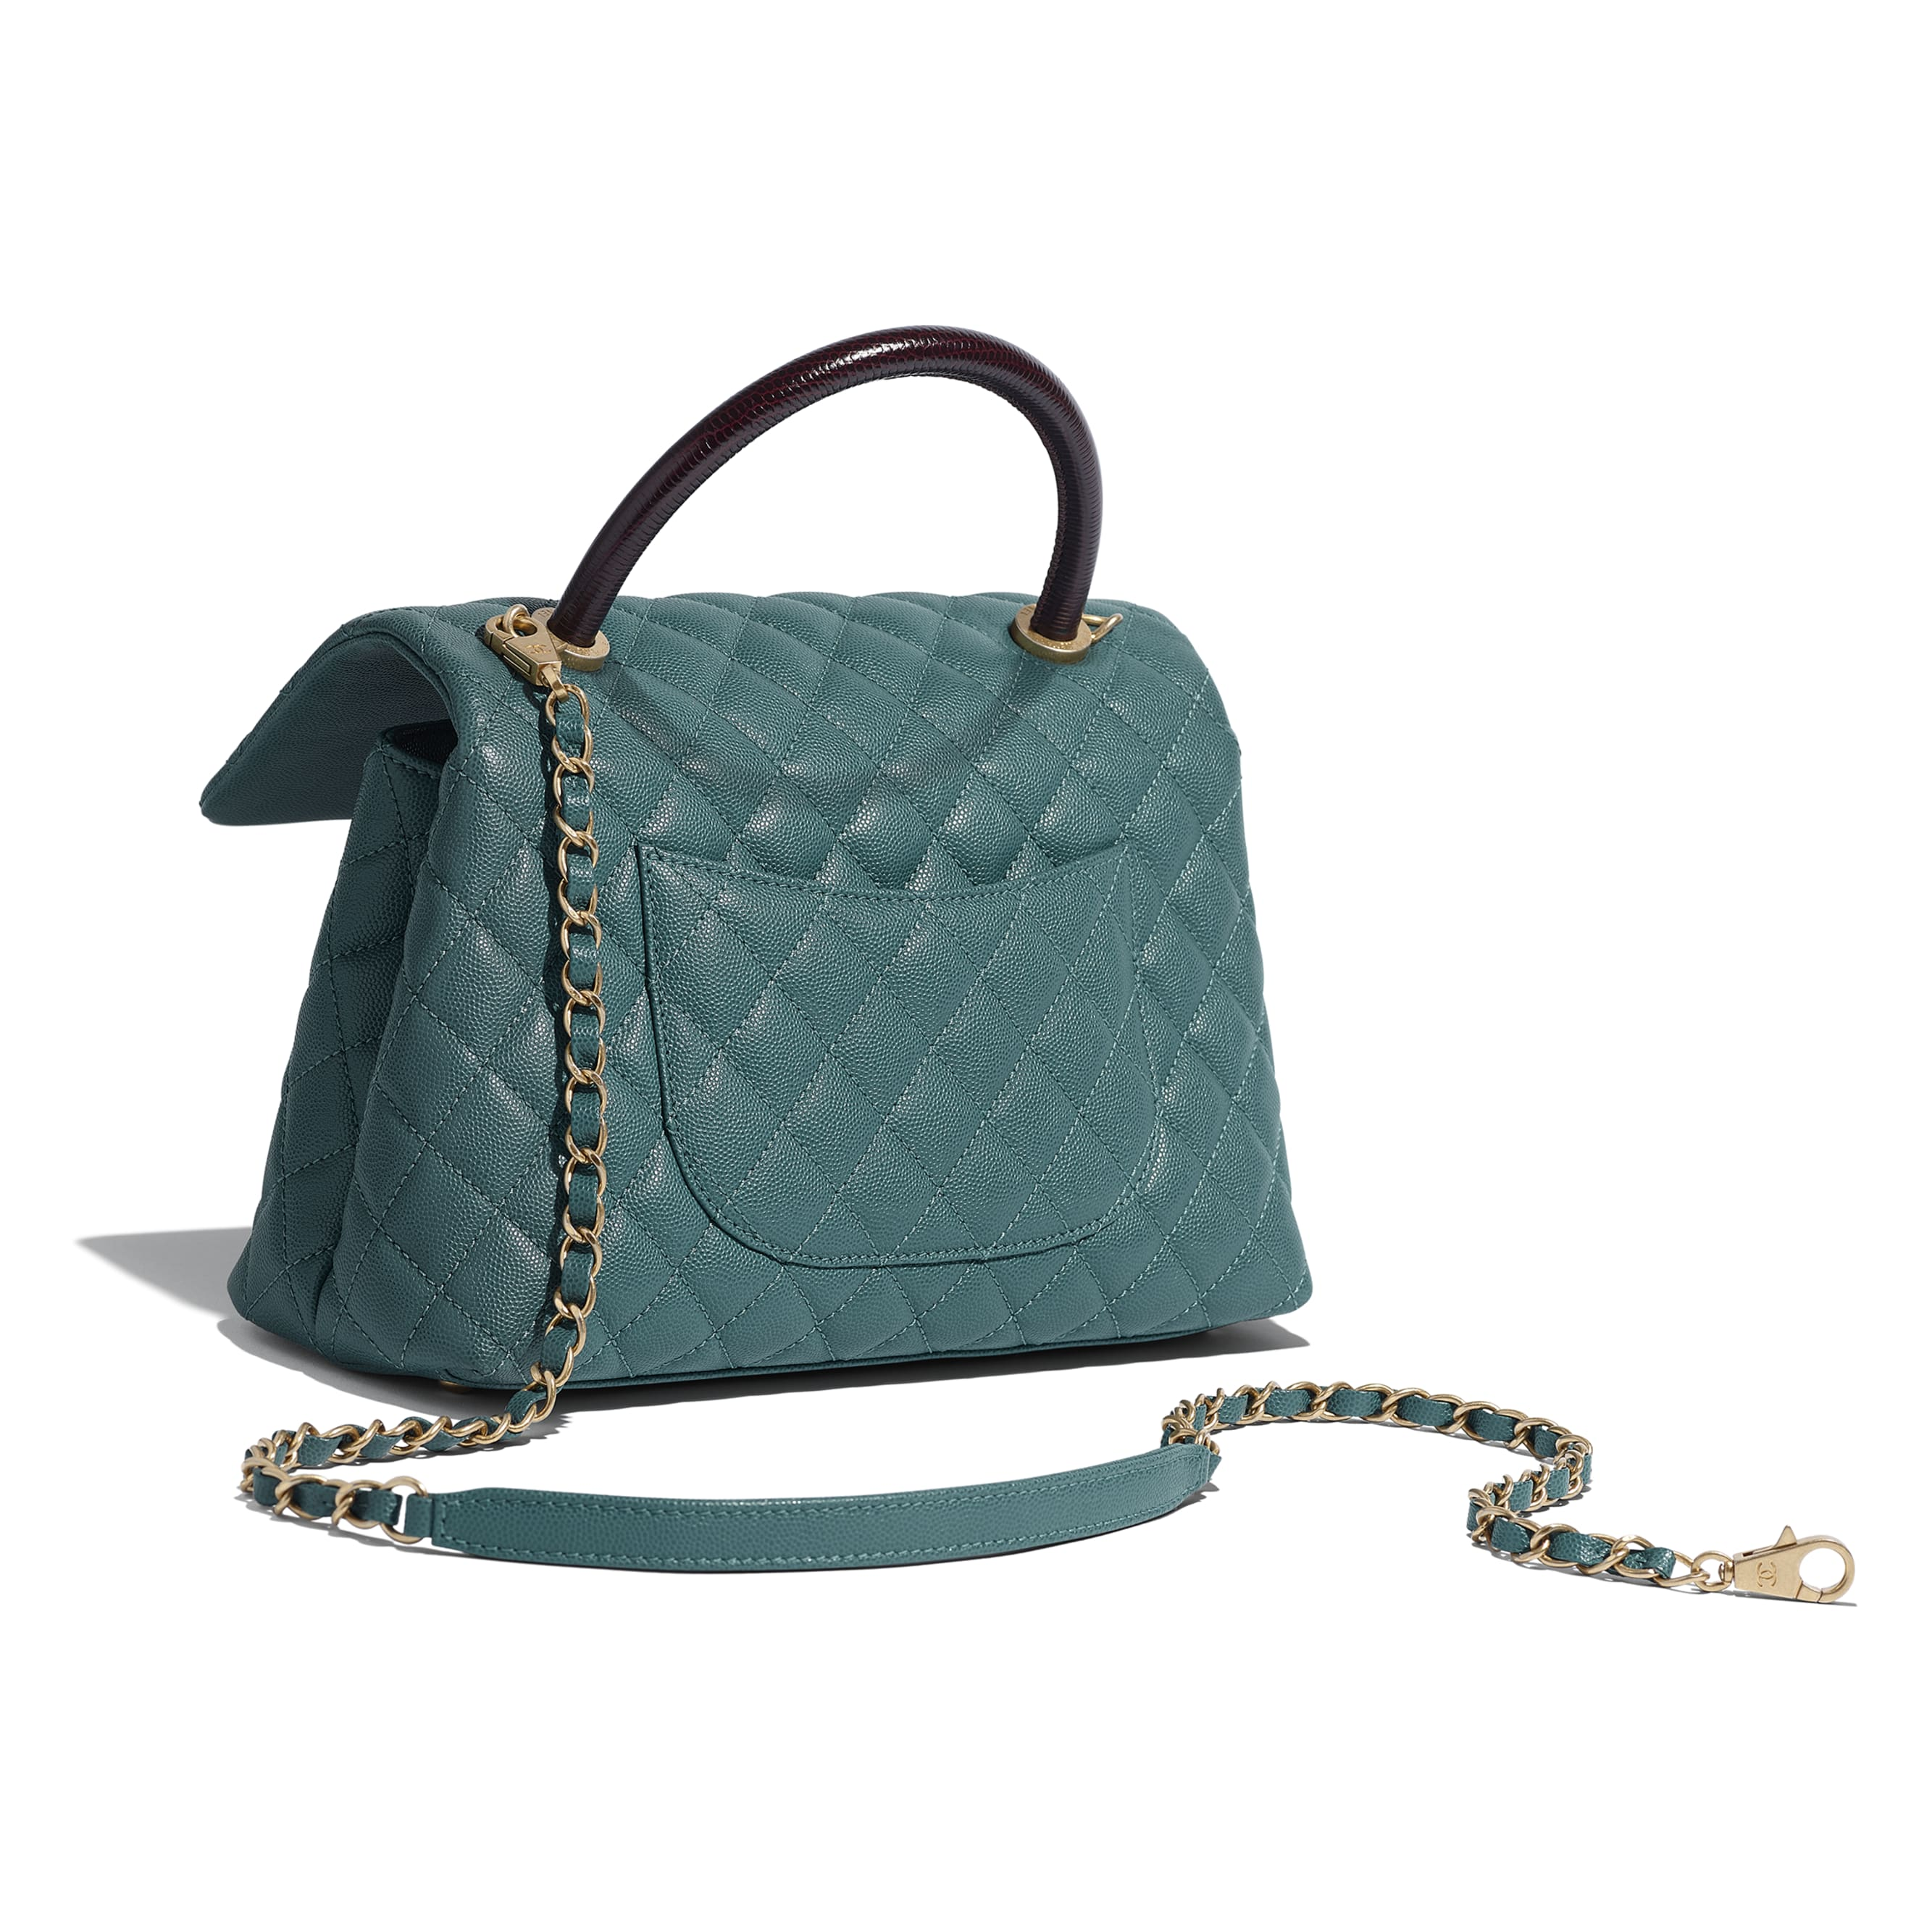 Flap Bag with Top Handle - Turquoise & Burgundy - Grained Calfskin, Lizard Embossed Calfskin & Gold-Tone Metal - Other view - see standard sized version